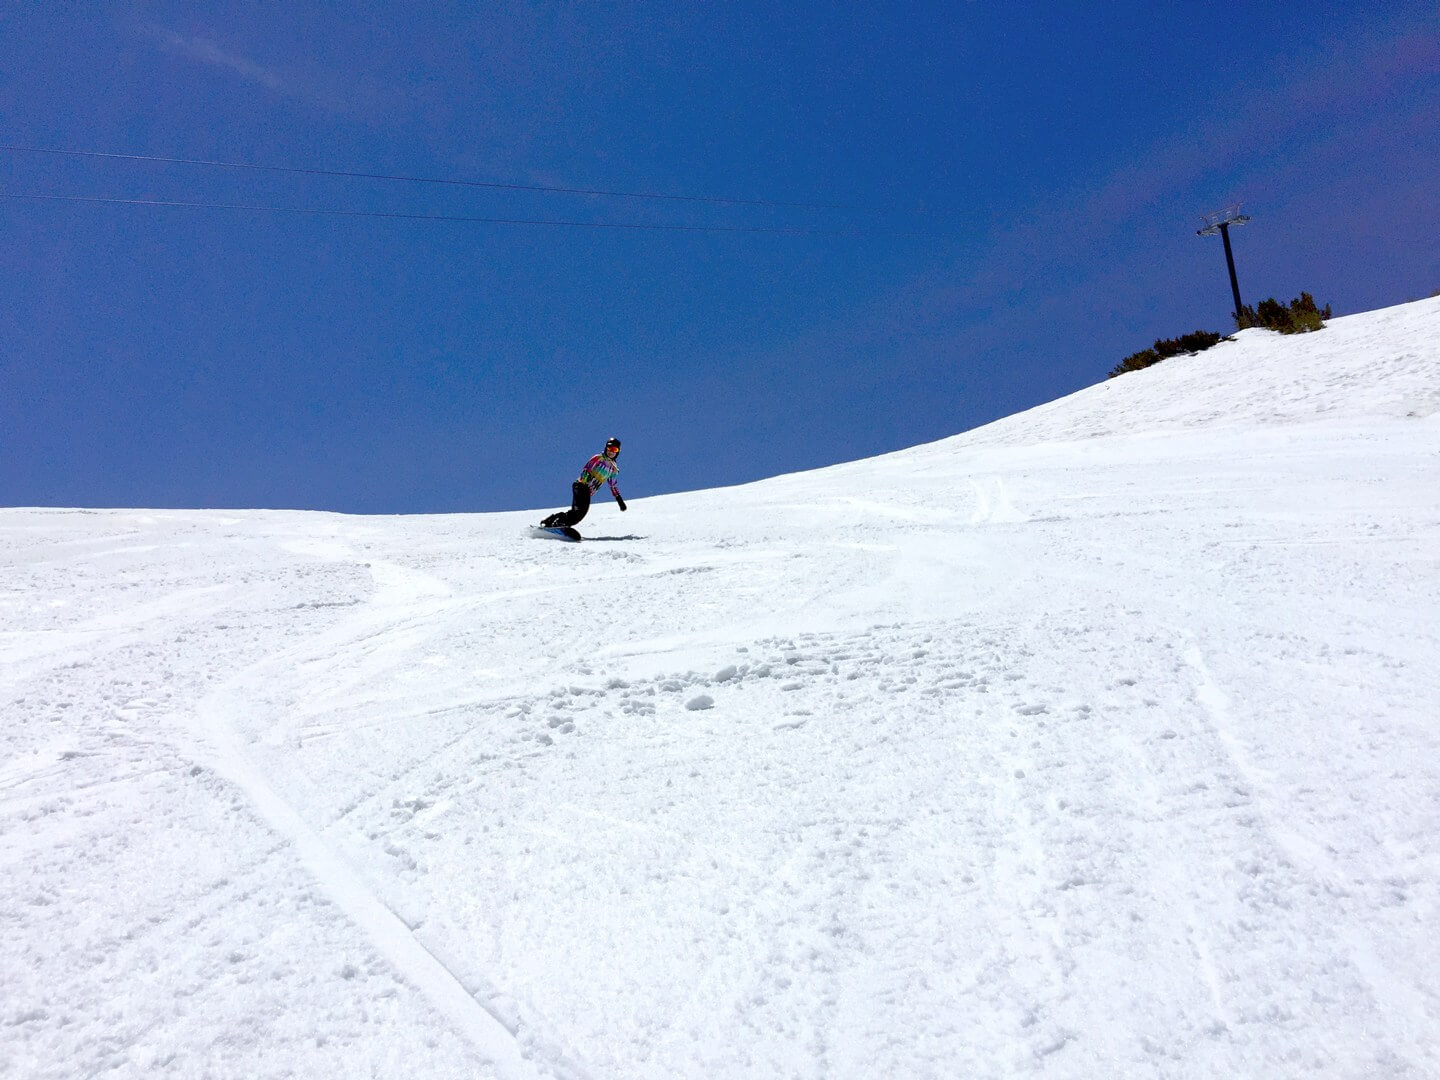 Snowboarder skiing corn snow in June at Mammoth Mountain California